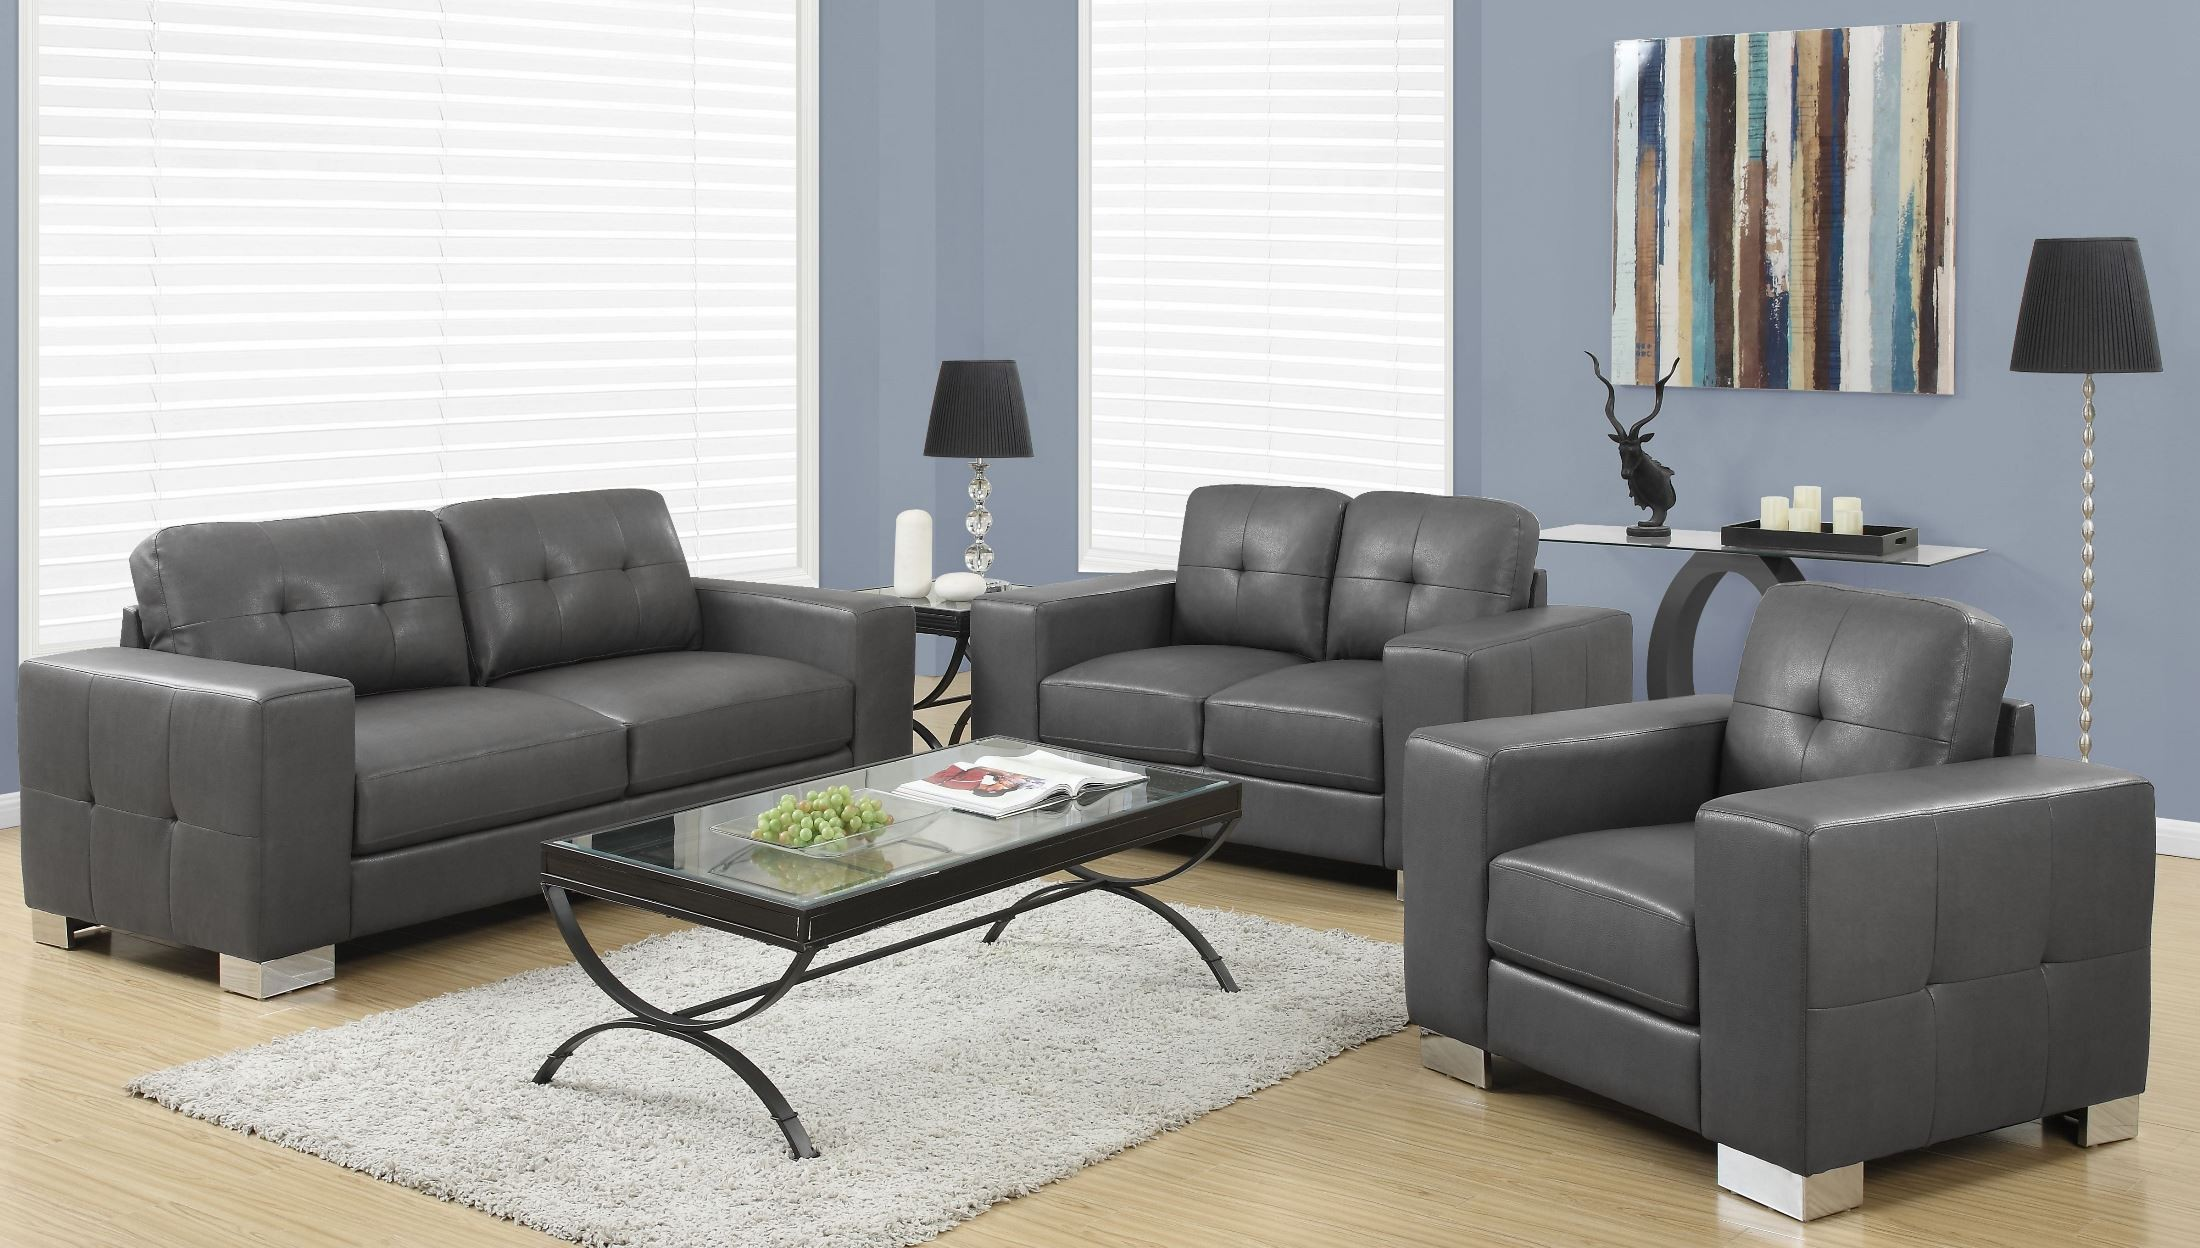 Grey Living Room Chairs 8223gy Charcoal Gray Bonded Leather Living Room Set From